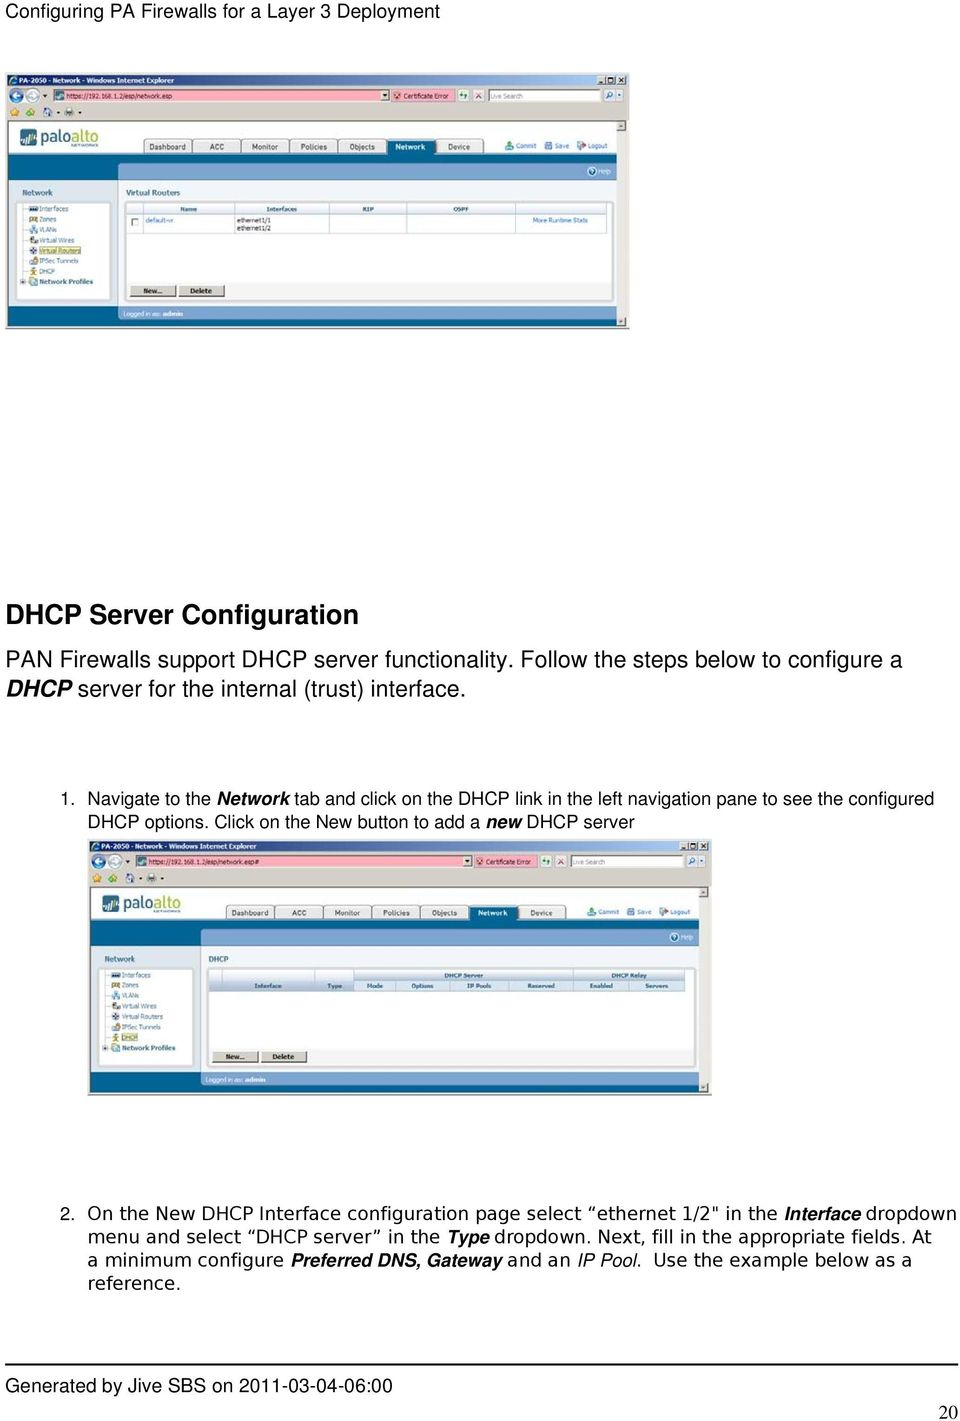 Navigate to the Network tab and click on the DHCP link in the left navigation pane to see the configured DHCP options.